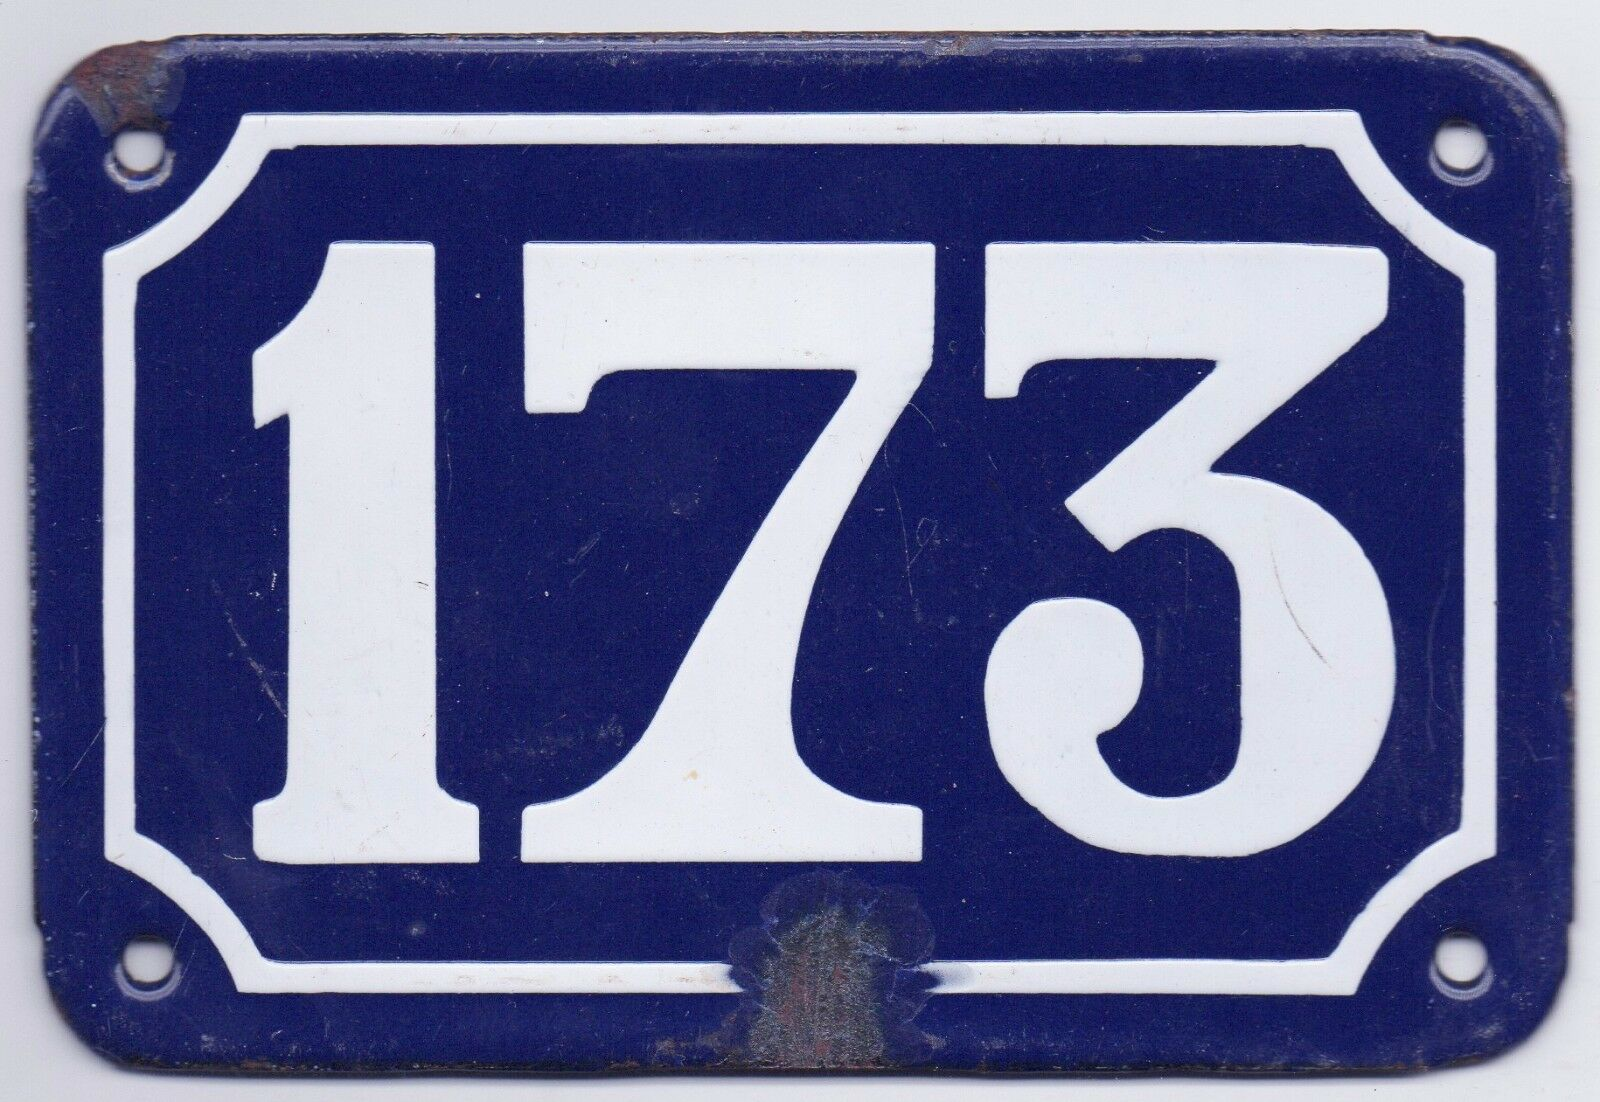 Old blue French house number 173 door gate plate plaque enamel steel metal sign